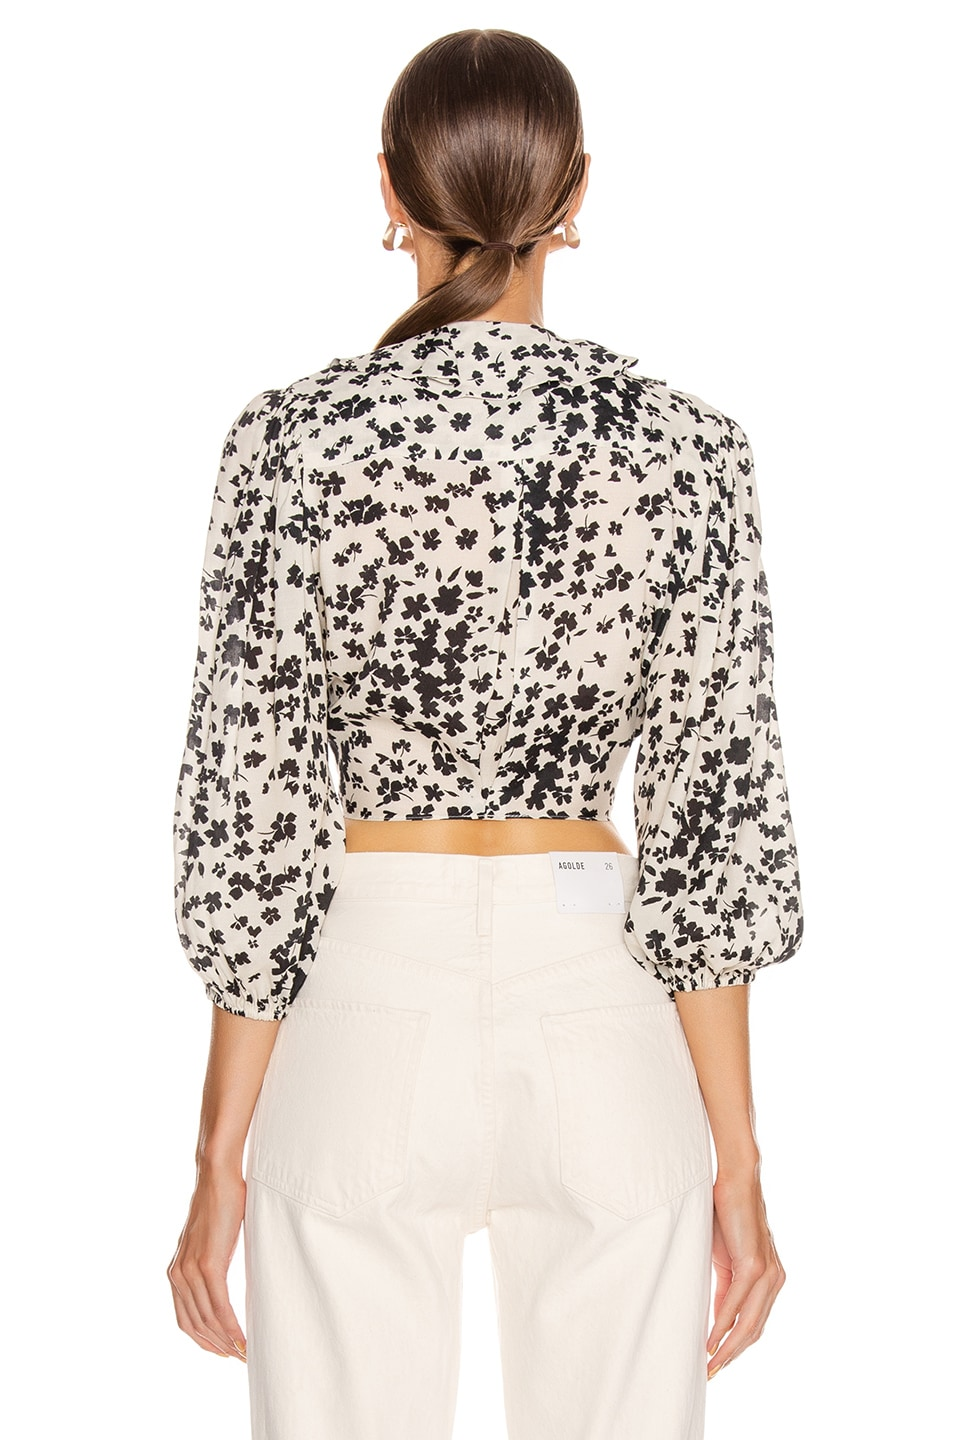 Image 3 of ICONS Objects of Devotion The Doherty Top in Ivory Black Floral